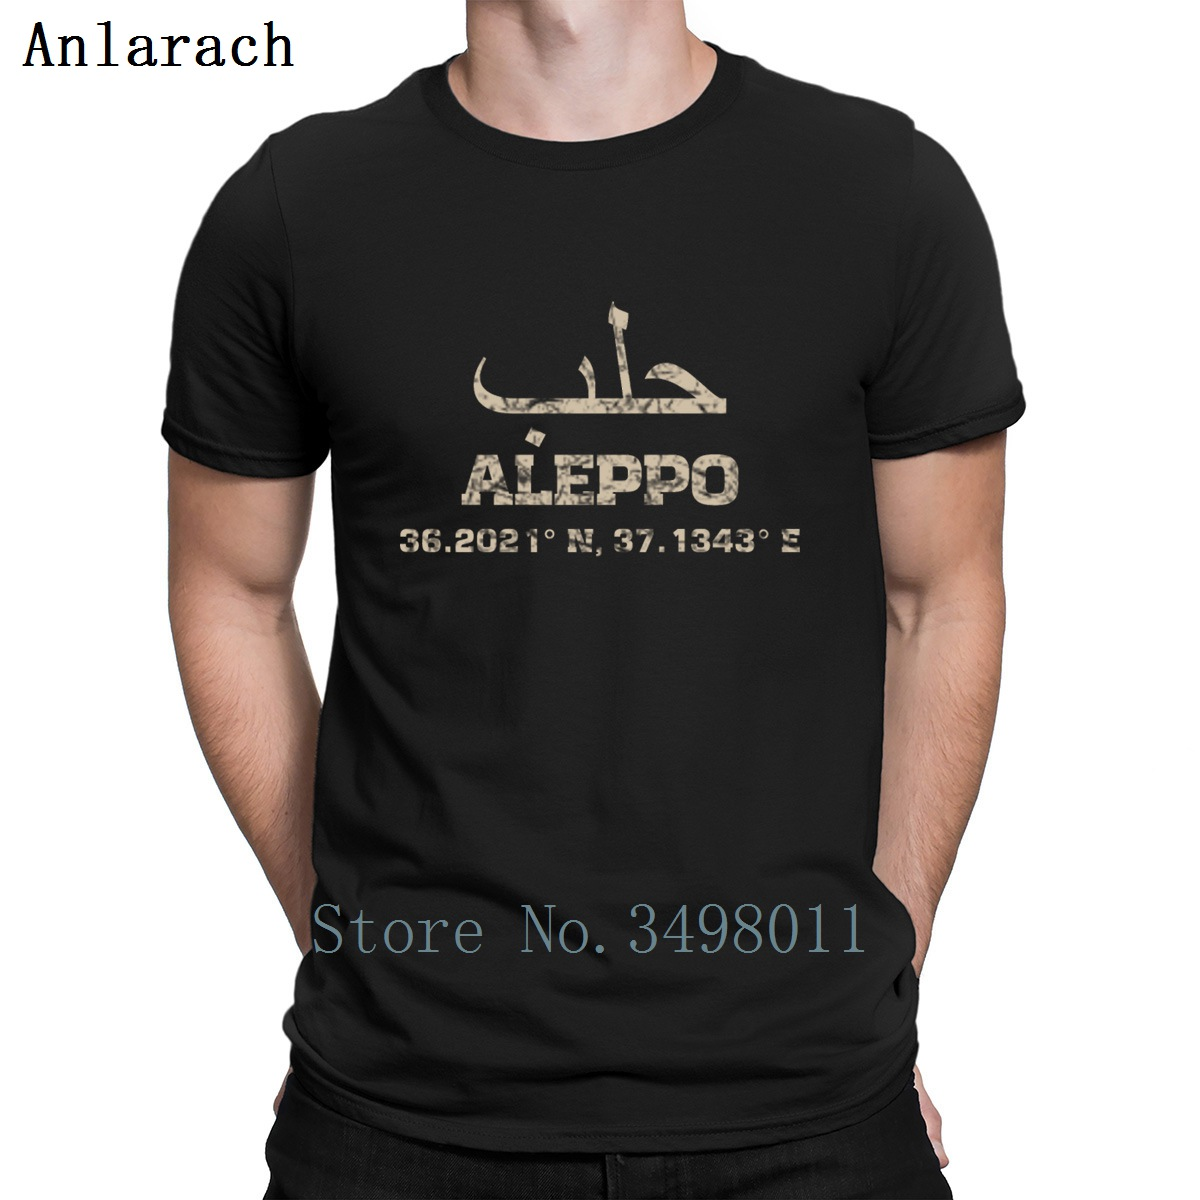 Aleppo Syria   T     Shirt   Design 100% Cotton O Neck Clothing Fitness Fashion Summer Style Trend   Shirt